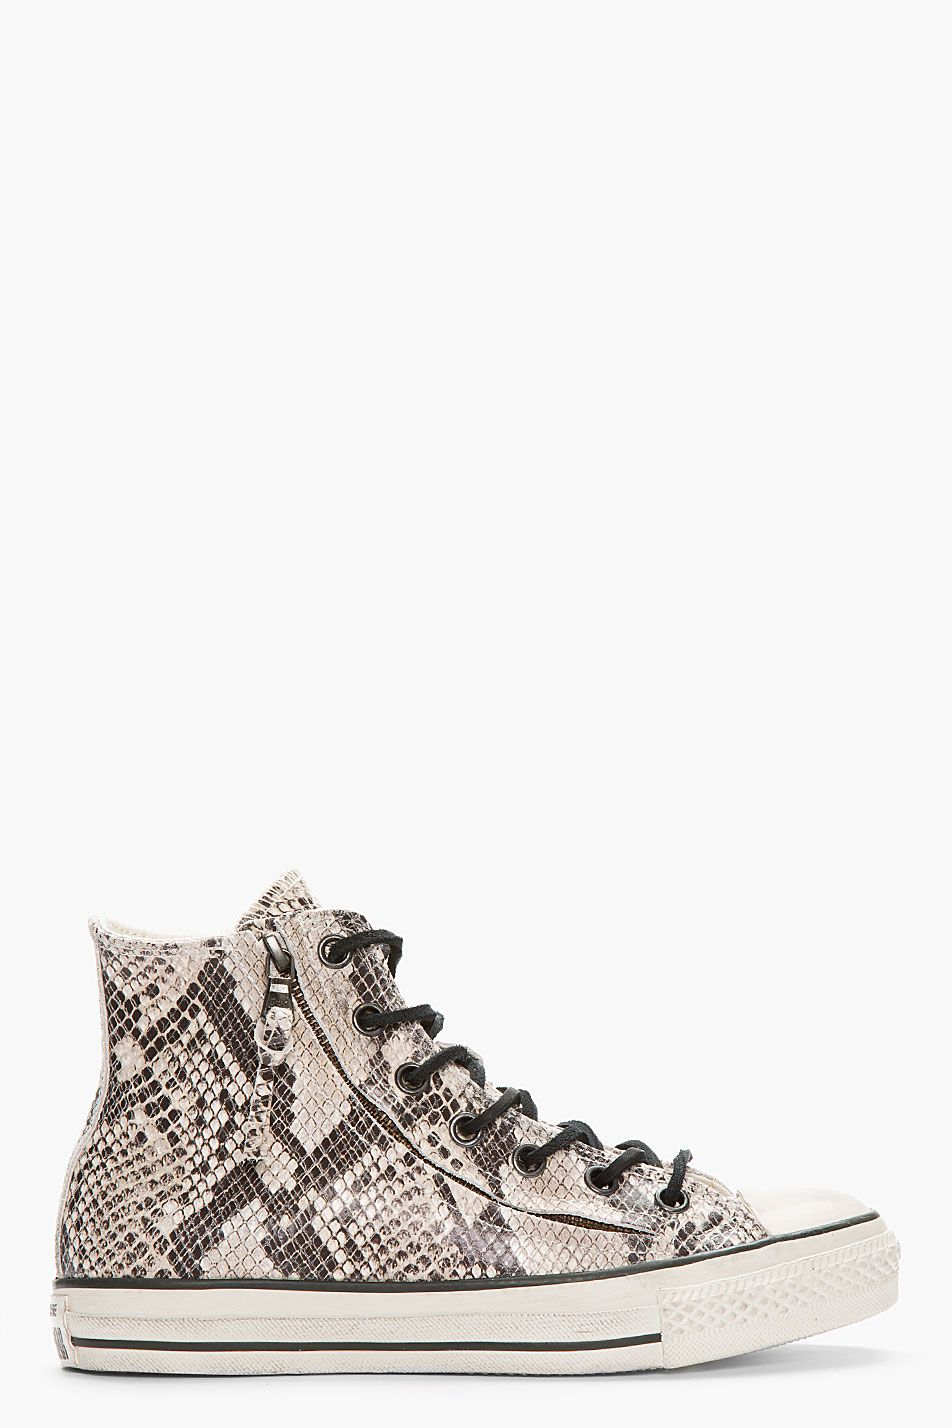 f9e647ae6f6 CONVERSE BY JOHN VARVATOS Ivory Snakeskin Zippered Converse X All-Star High-Top  Sneakers